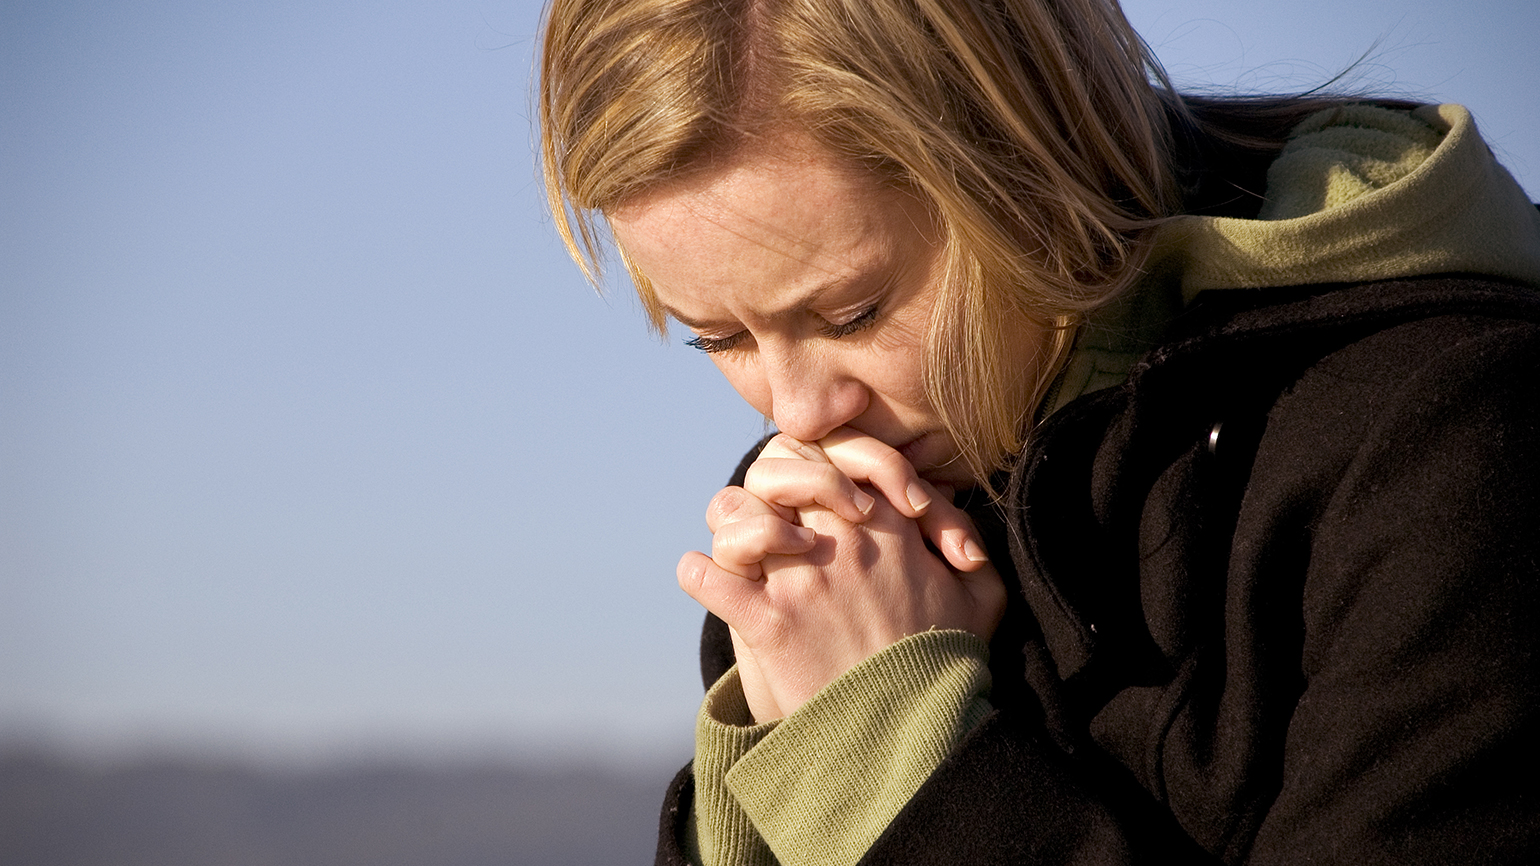 A woman bows her head in prayer